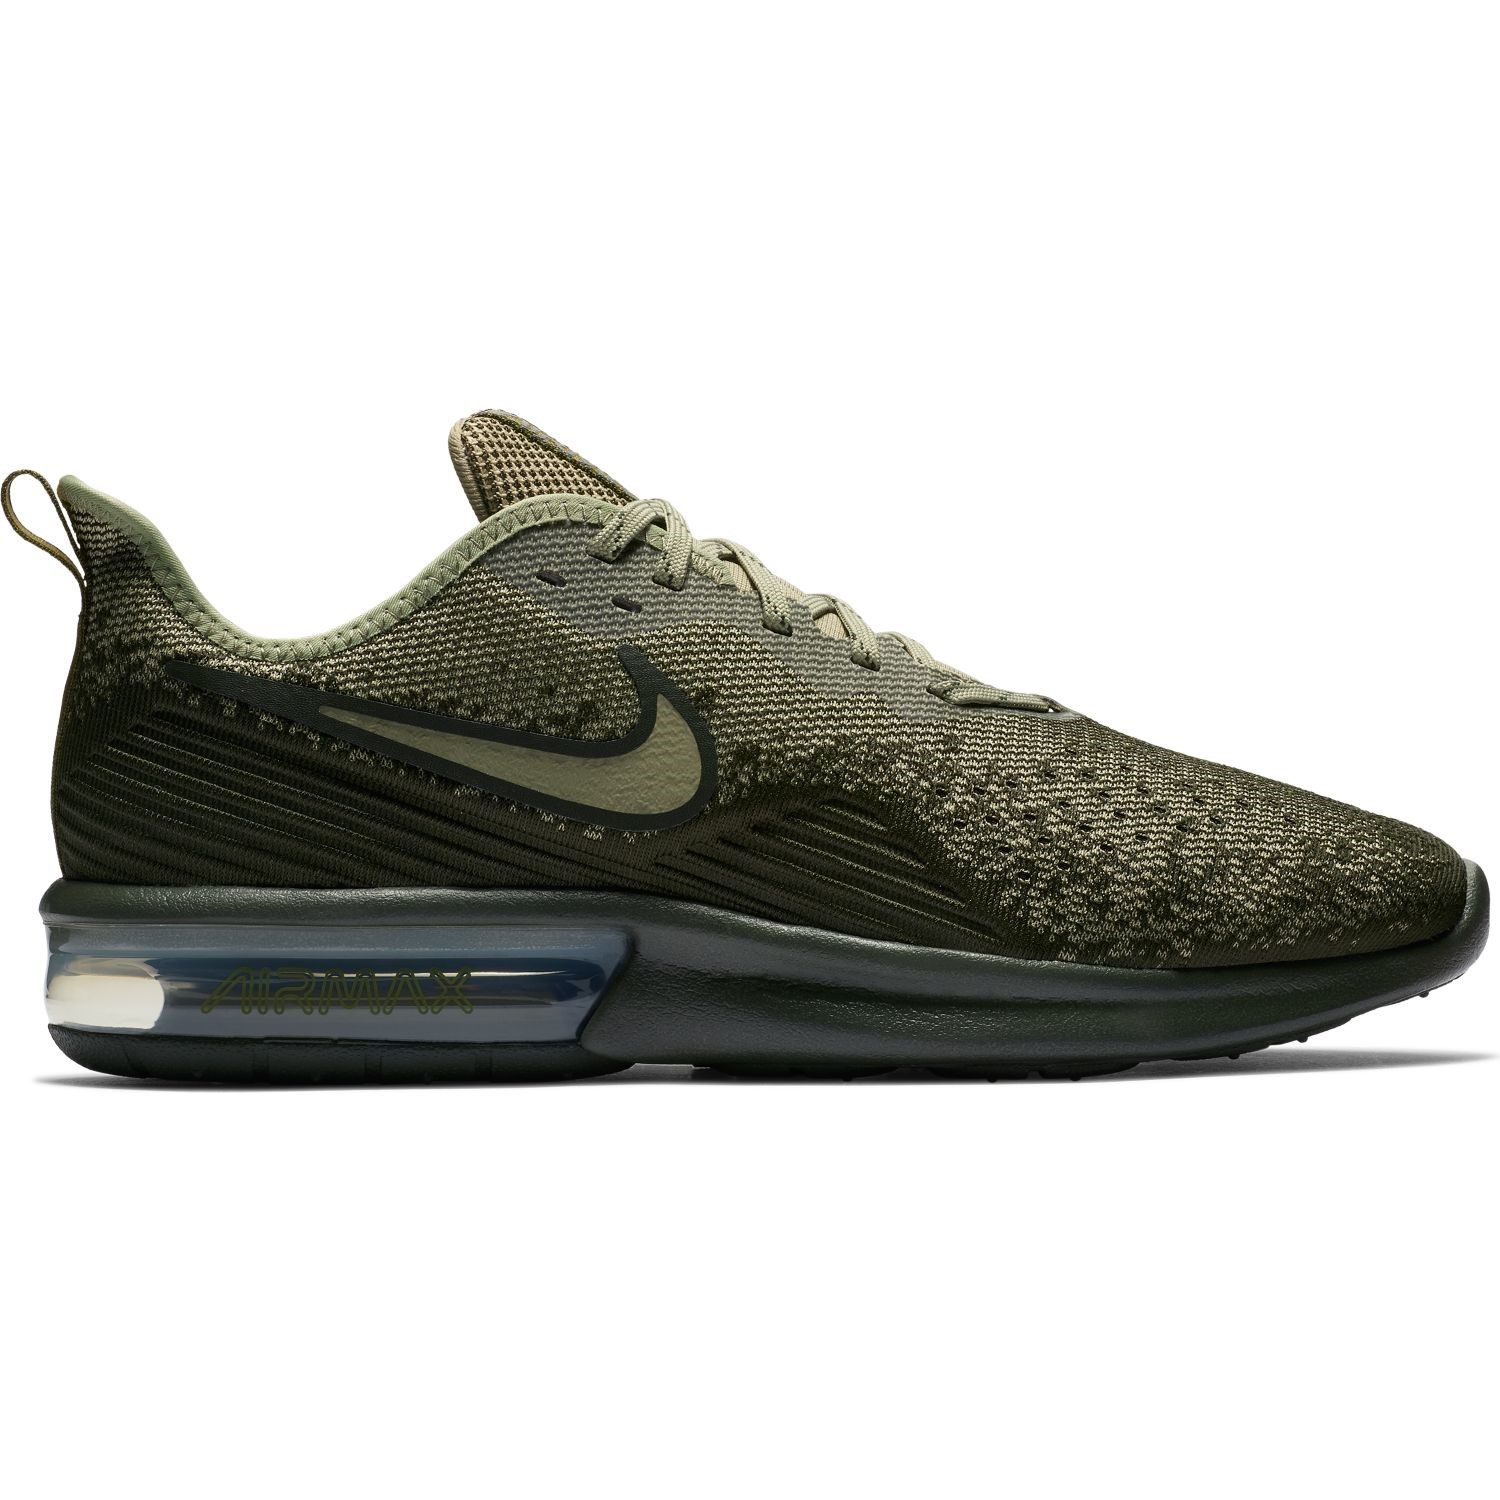 7d5e026b3a9 Nike Air Max Sequent 4 - Mens Running Shoes - Cargo Khaki Peat Moss ...